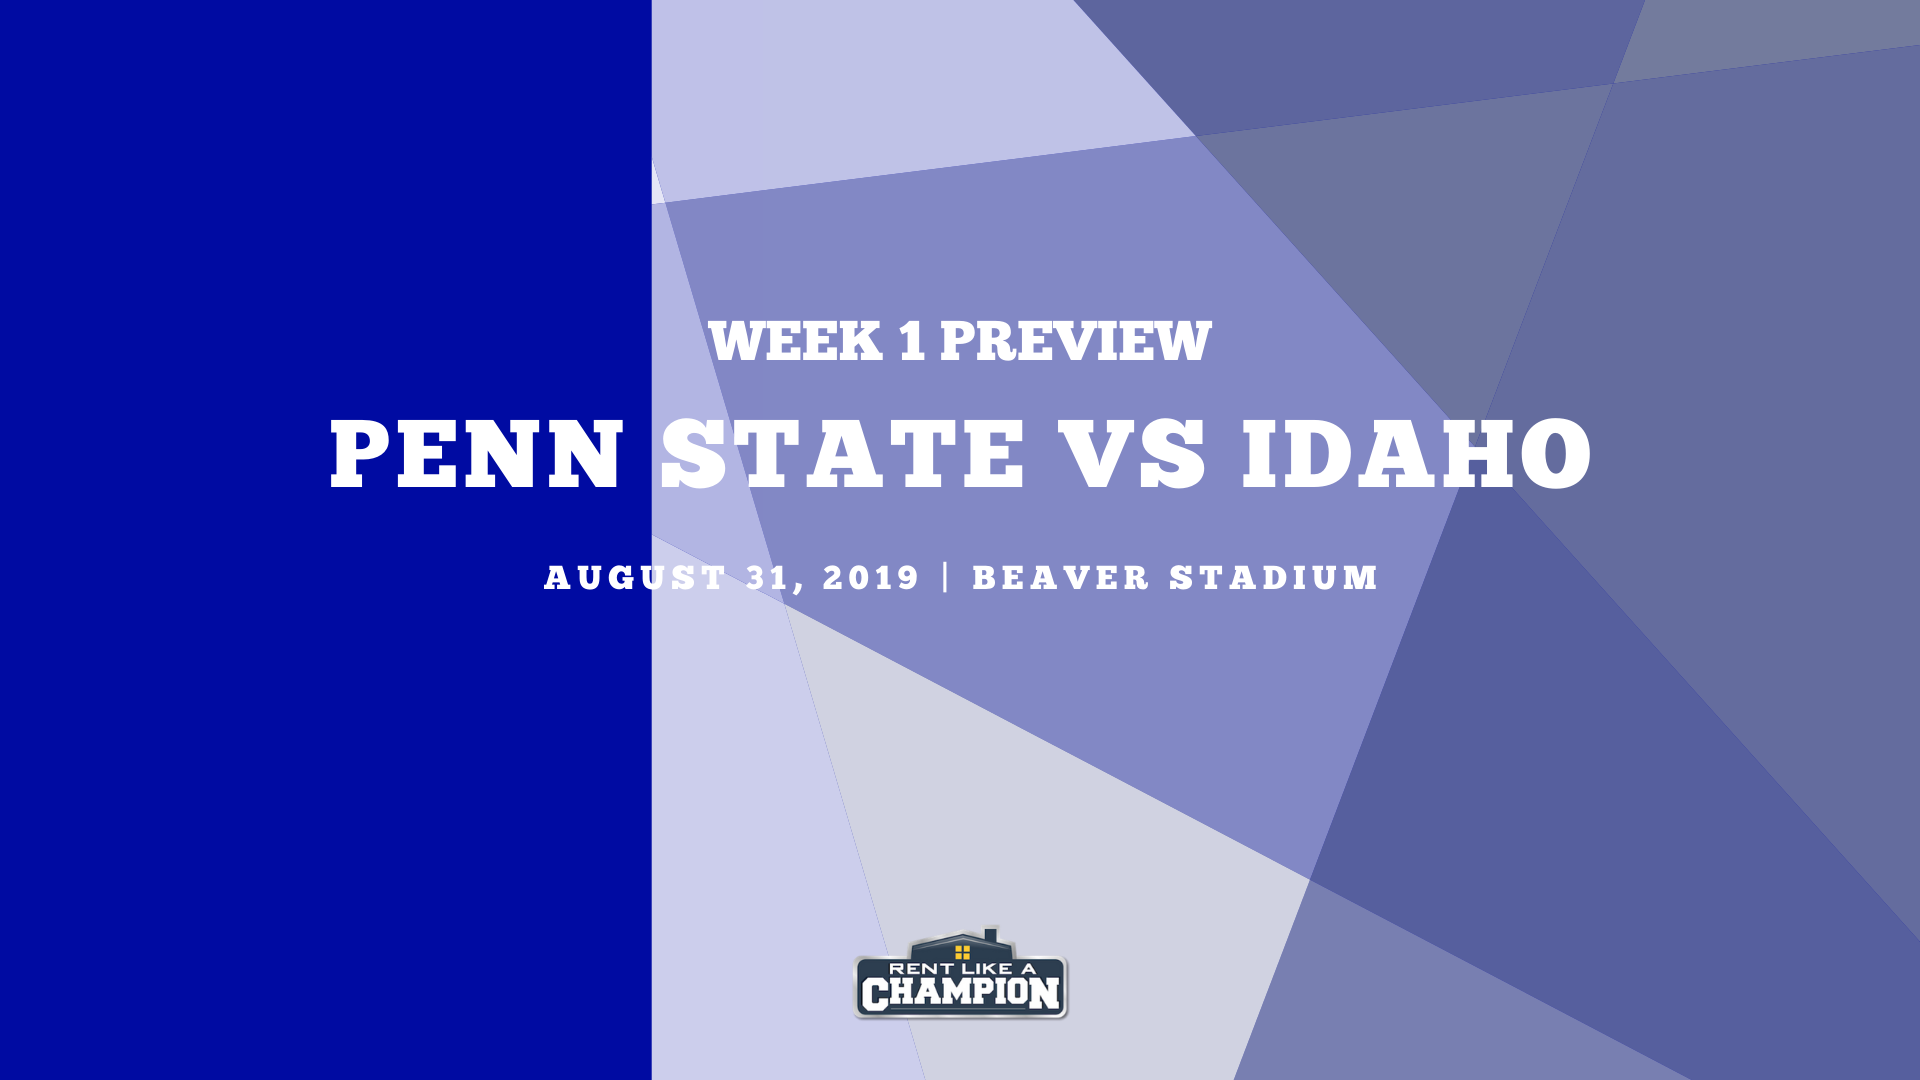 Penn State Game Preview Template